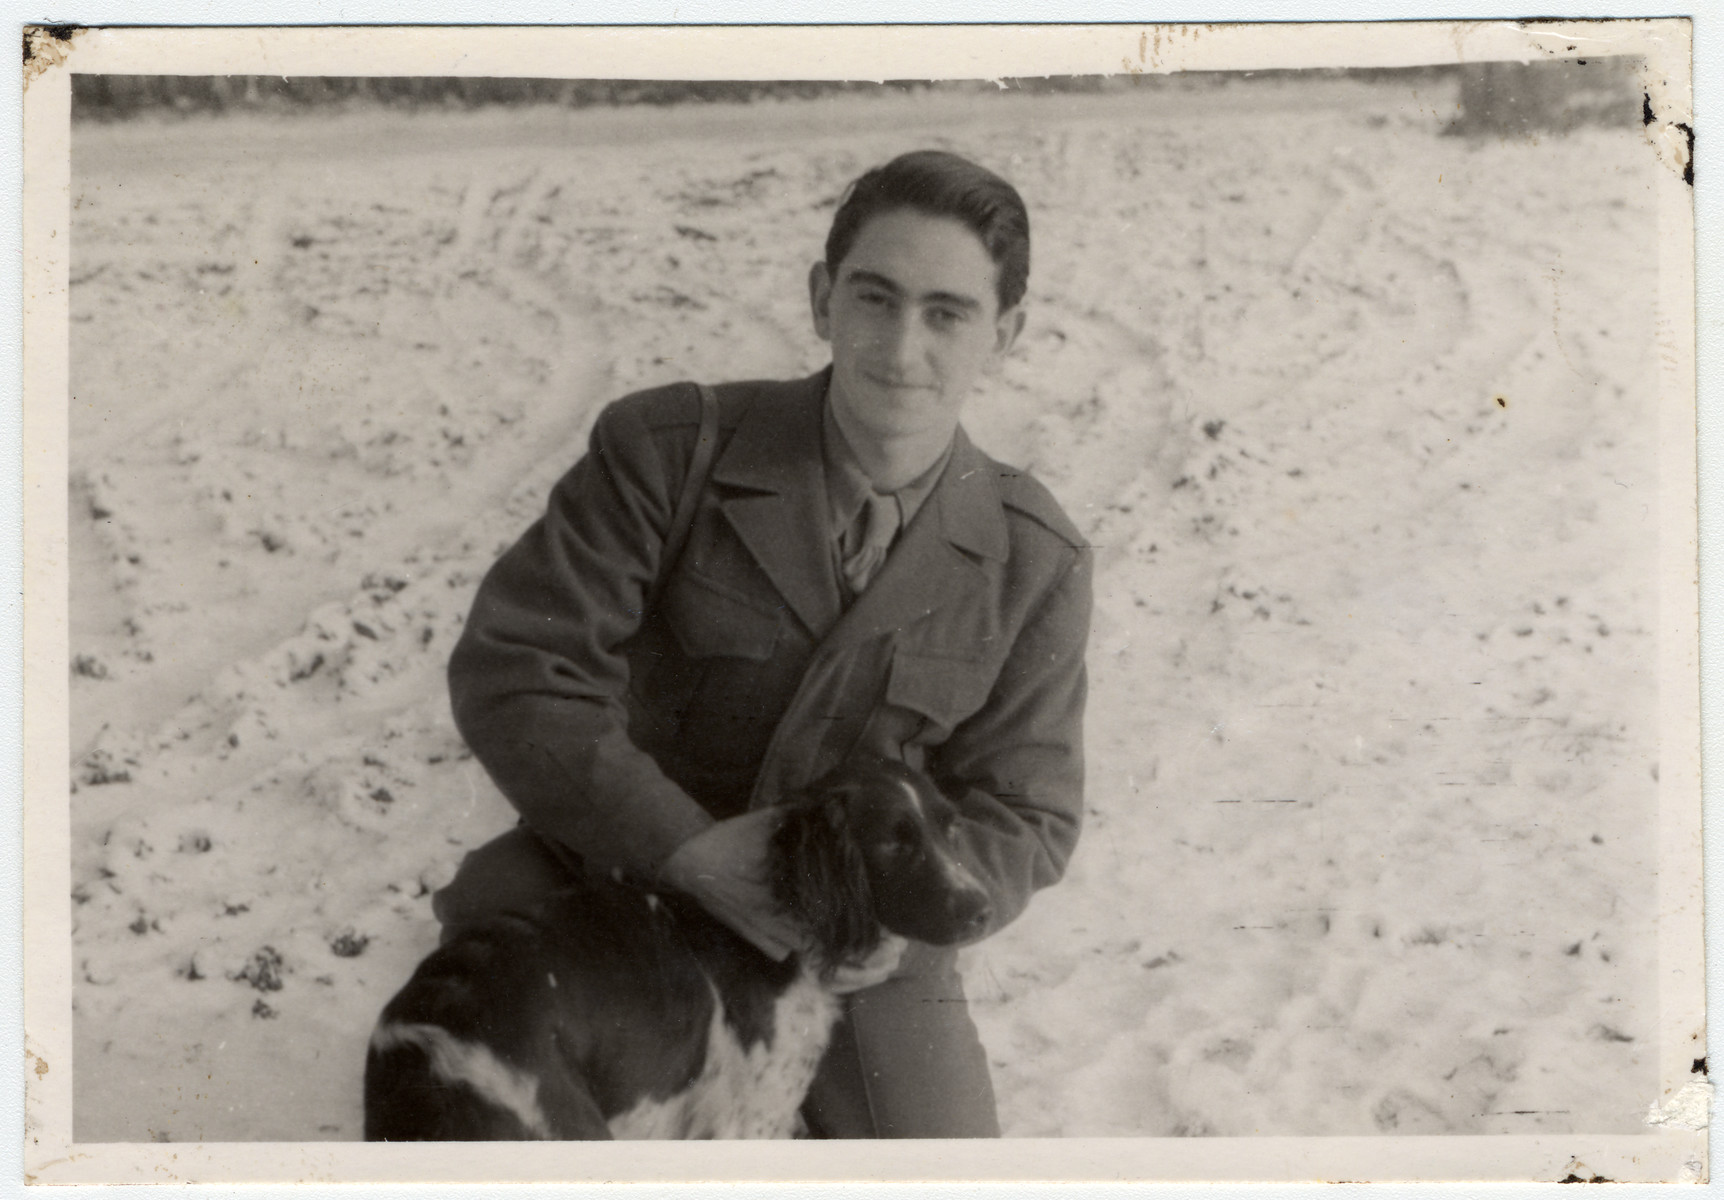 Shmuel Shalkovsky (donor), a Lithuanian survivor, poses with a dog in Germany where he is helping the American army of occupation.